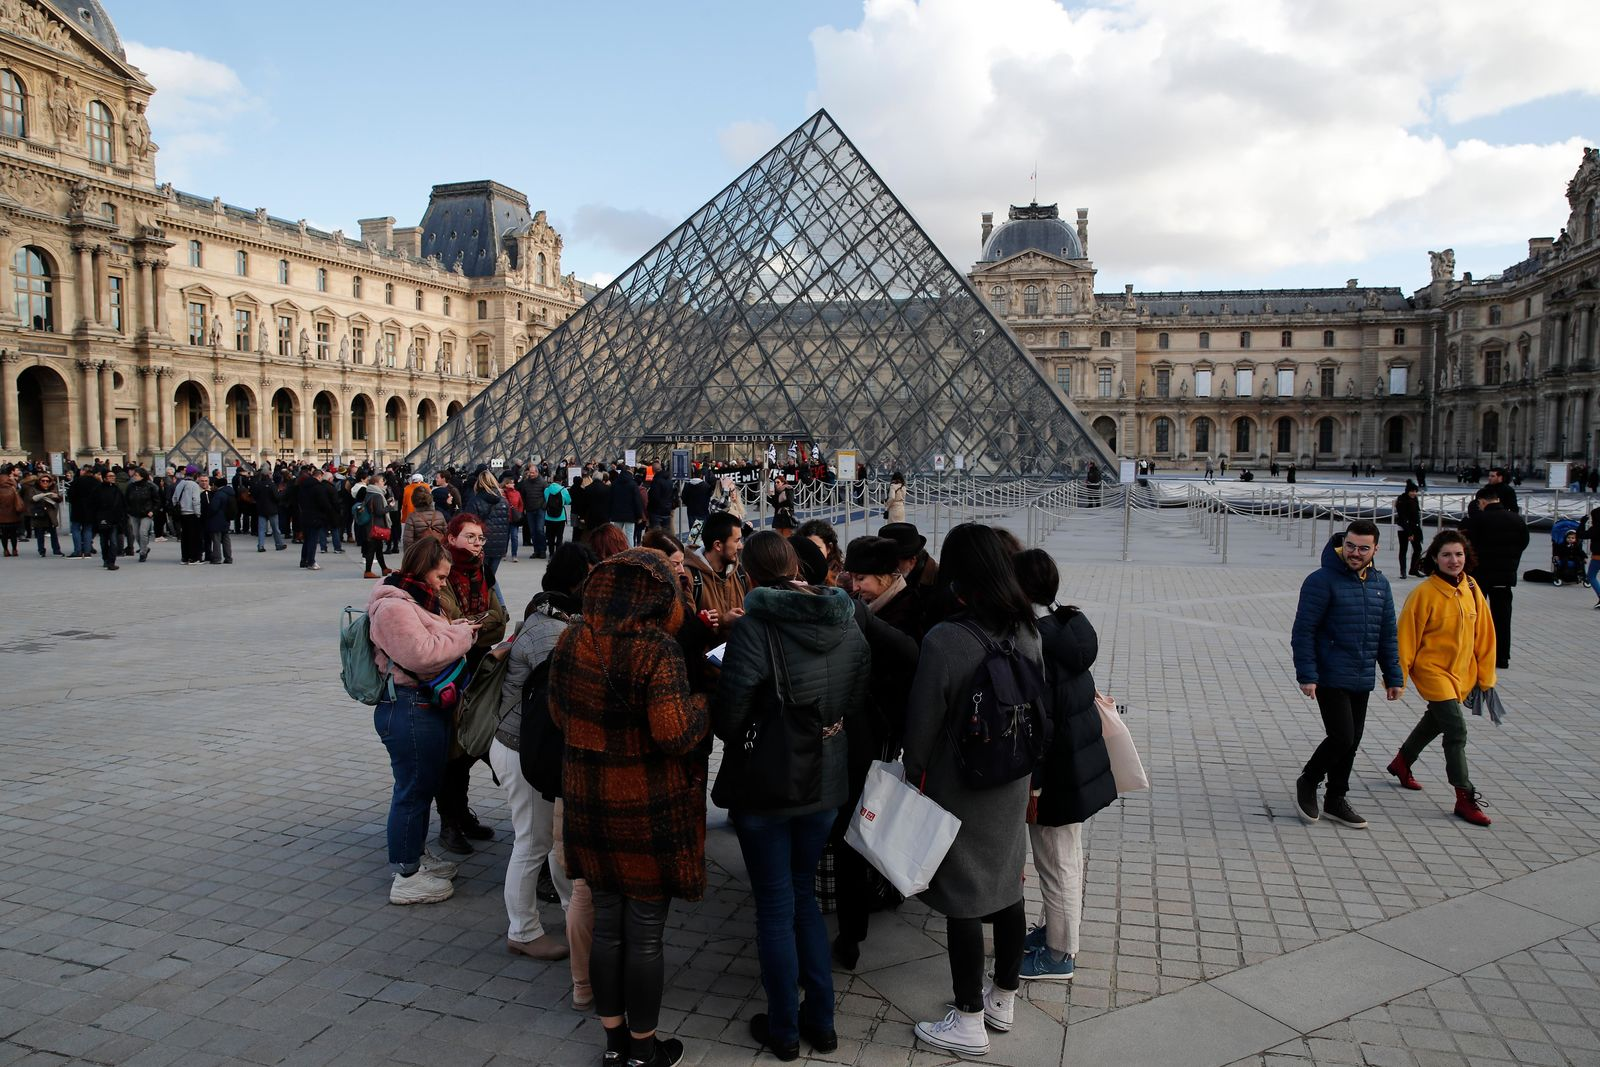 Visitors wait as striking employees demonstrate outside the Louvre museum Friday, Jan. 17, 2020 in Paris. . (AP Photo/Francois Mori)